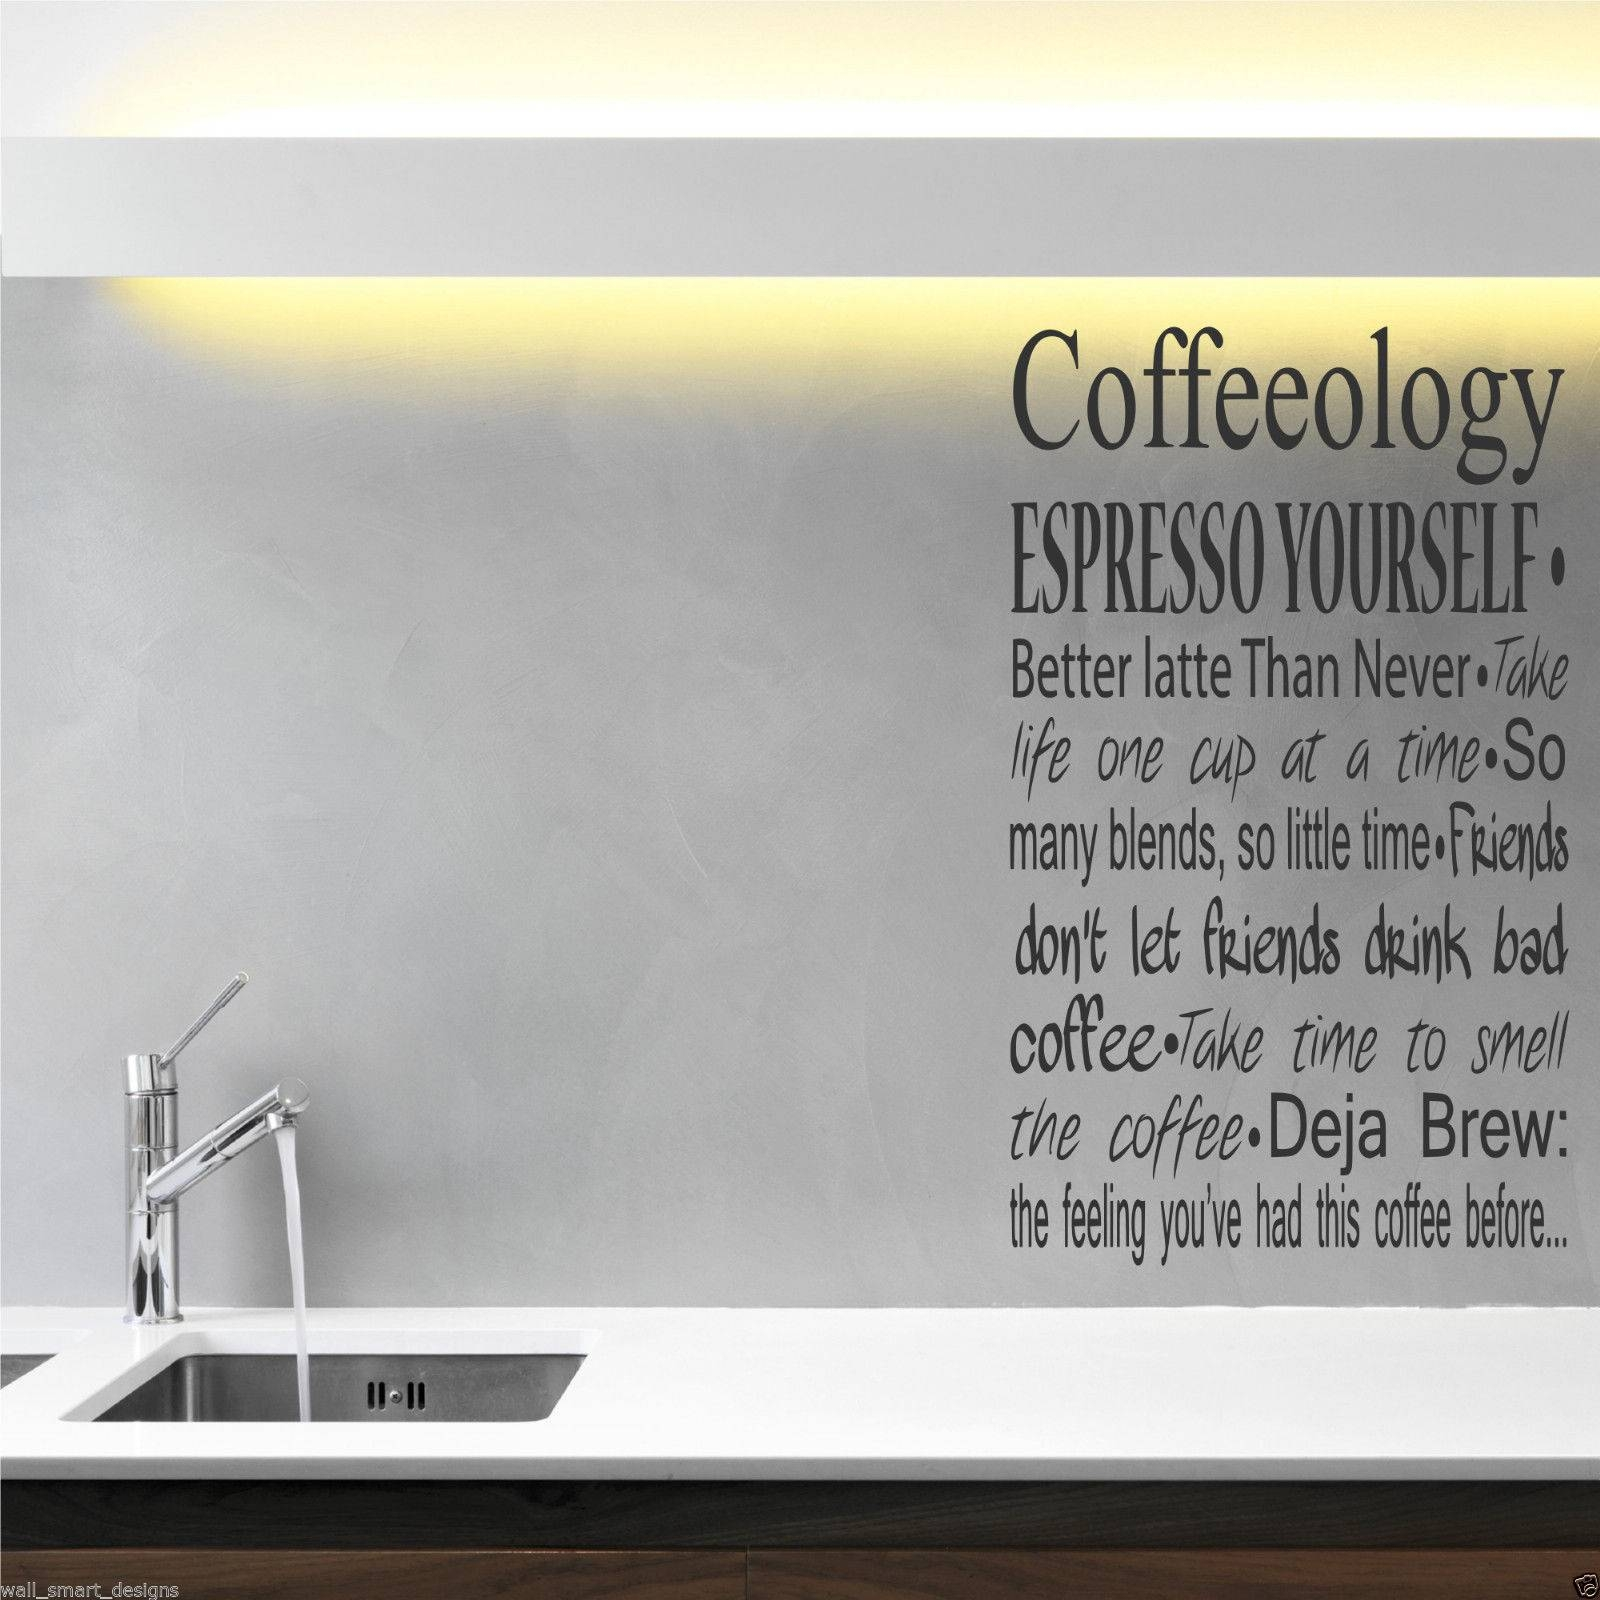 Coffee Coffeeology Kitchen Wall Art Sticker Quote Decal Mural For Latest Cafe Latte Kitchen Wall Art (View 13 of 30)